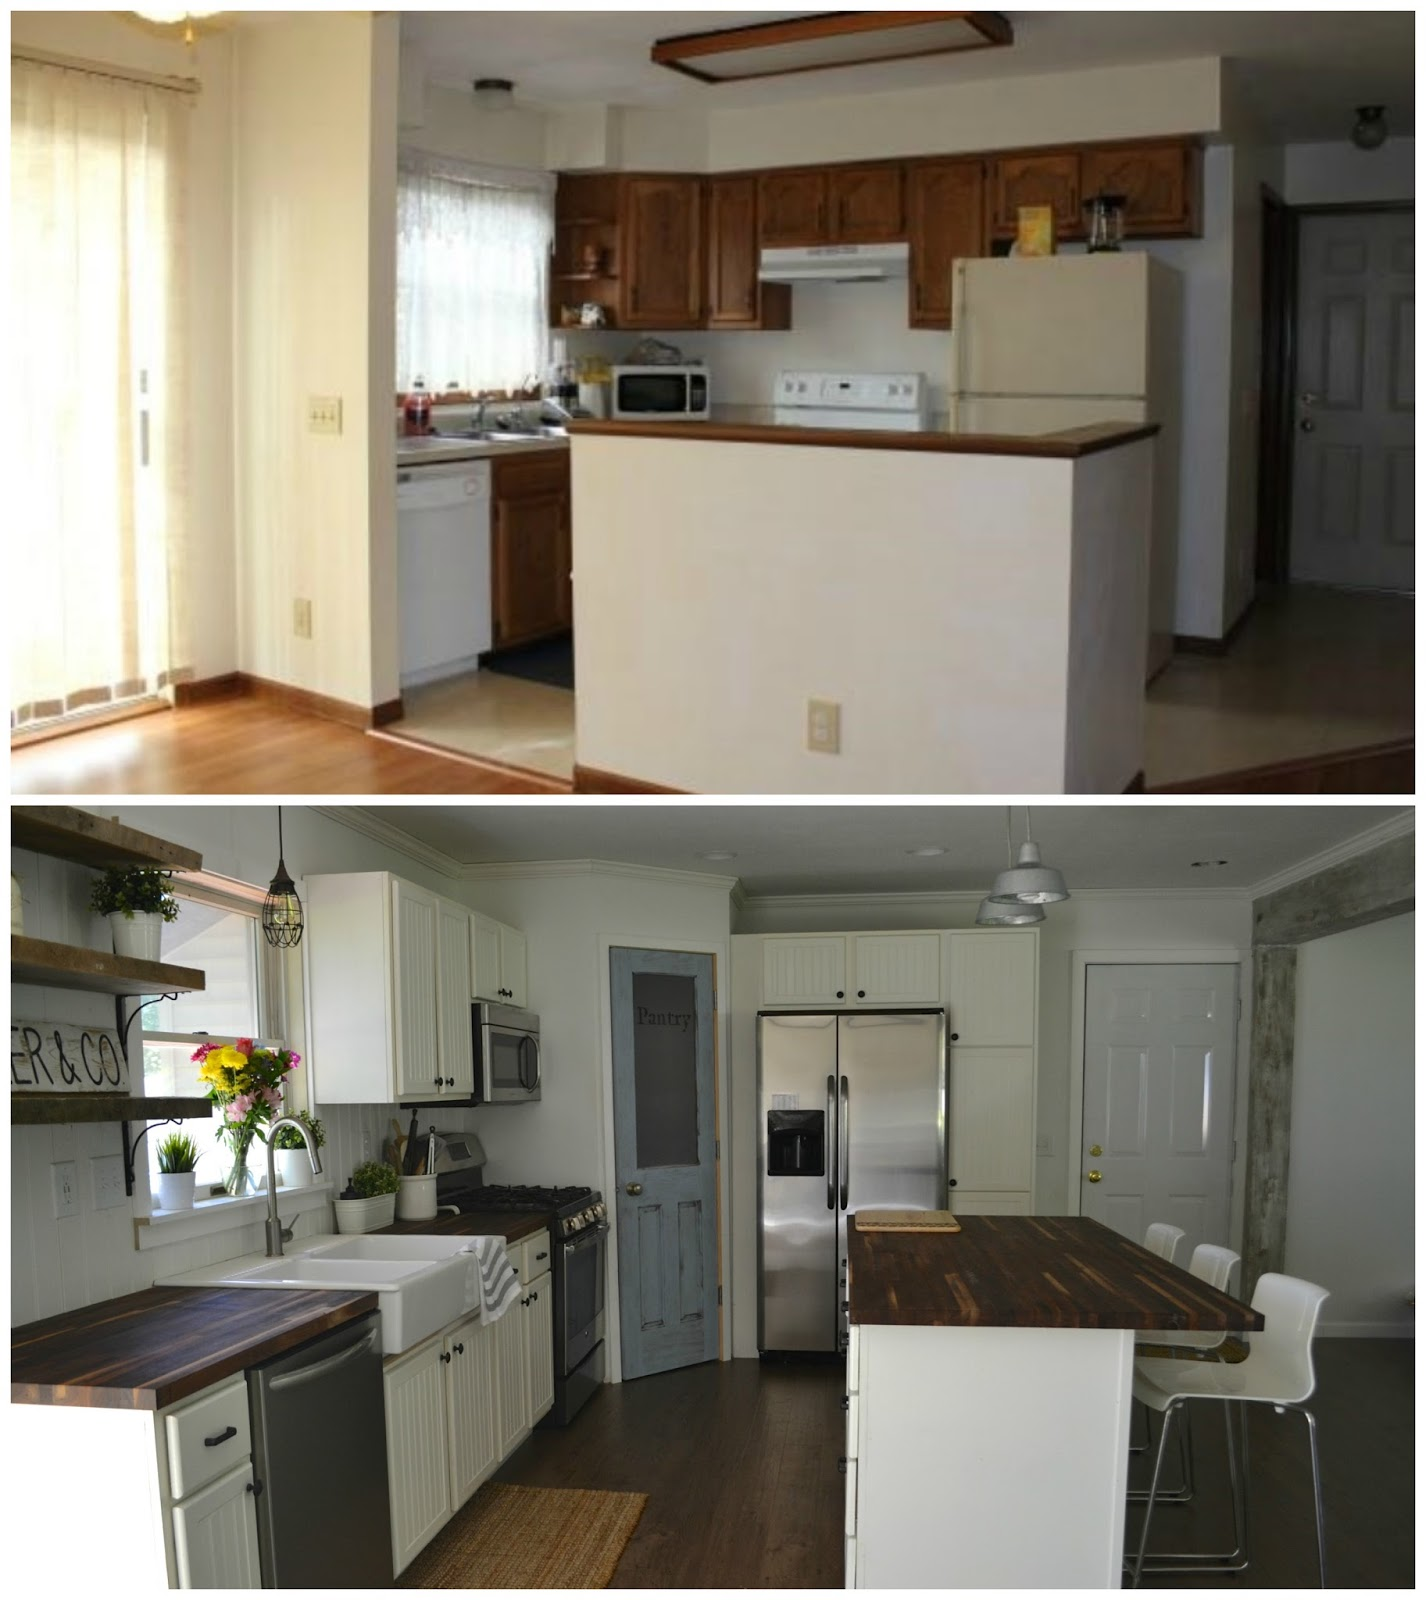 We Knocked Down The Wall Dividing Kitchen And Living Room Put A Beam Up Painted Everything Fresh New White As Comes